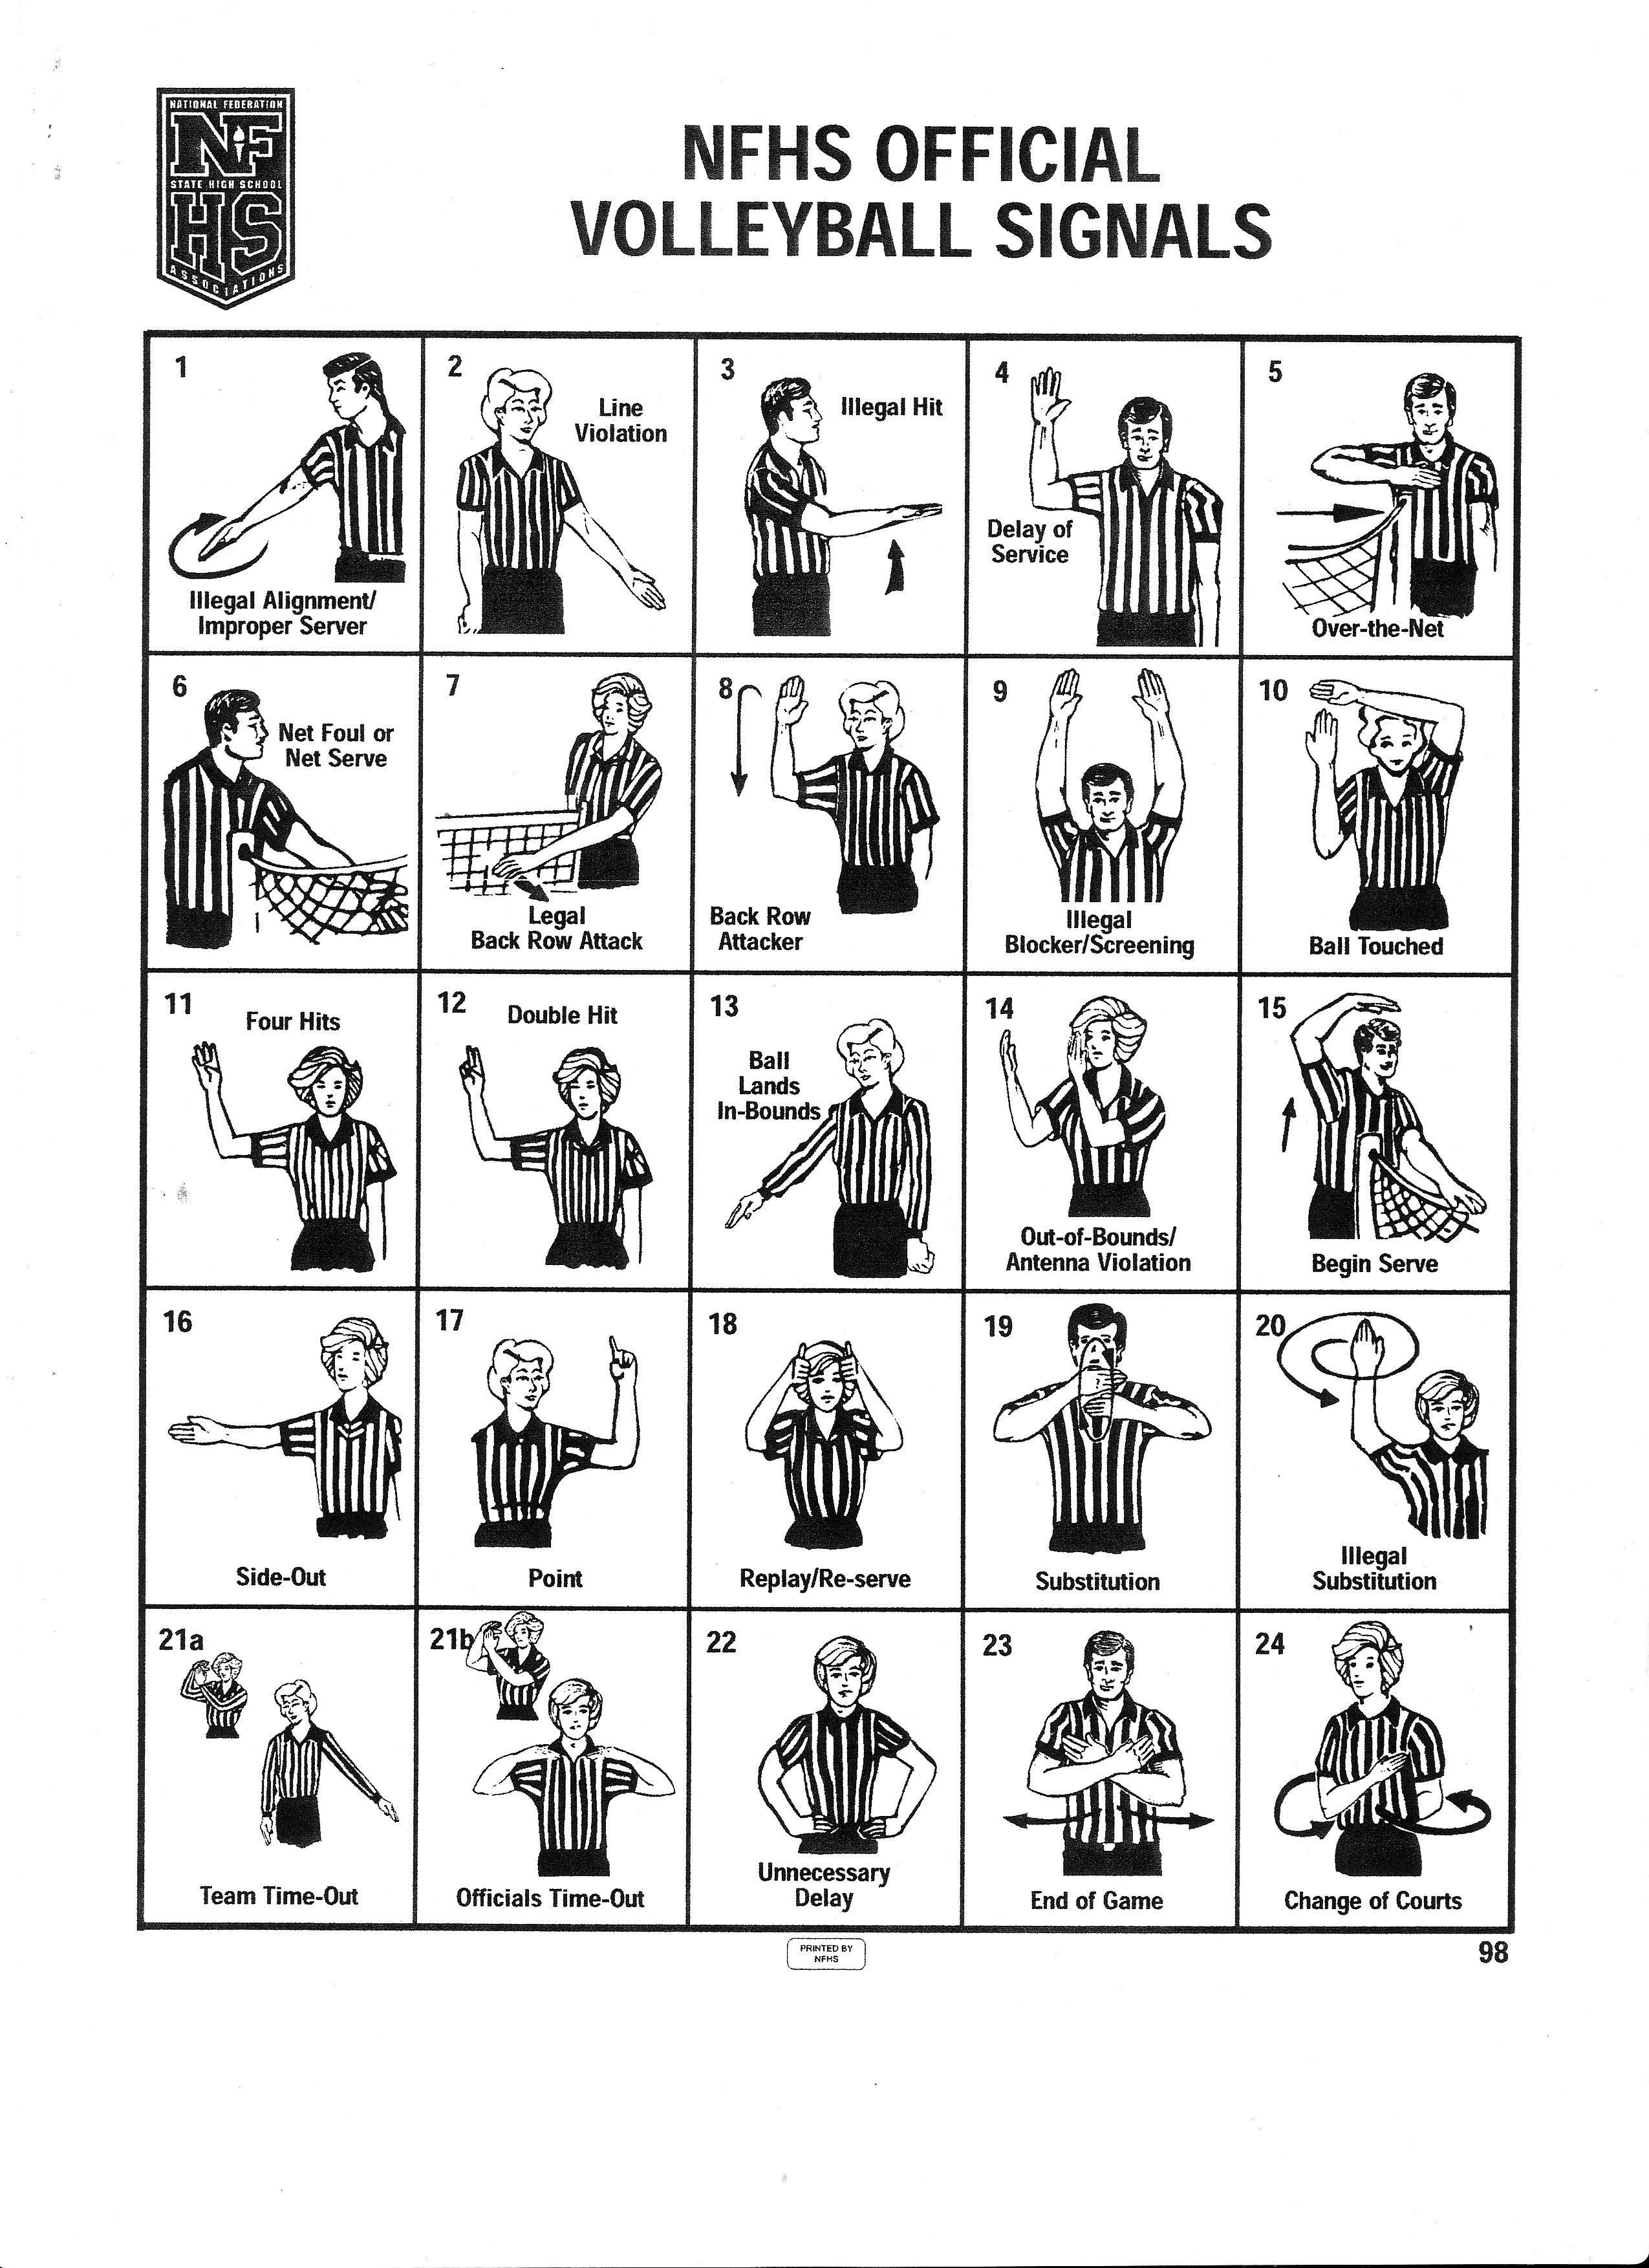 Offical Volleyball Signals